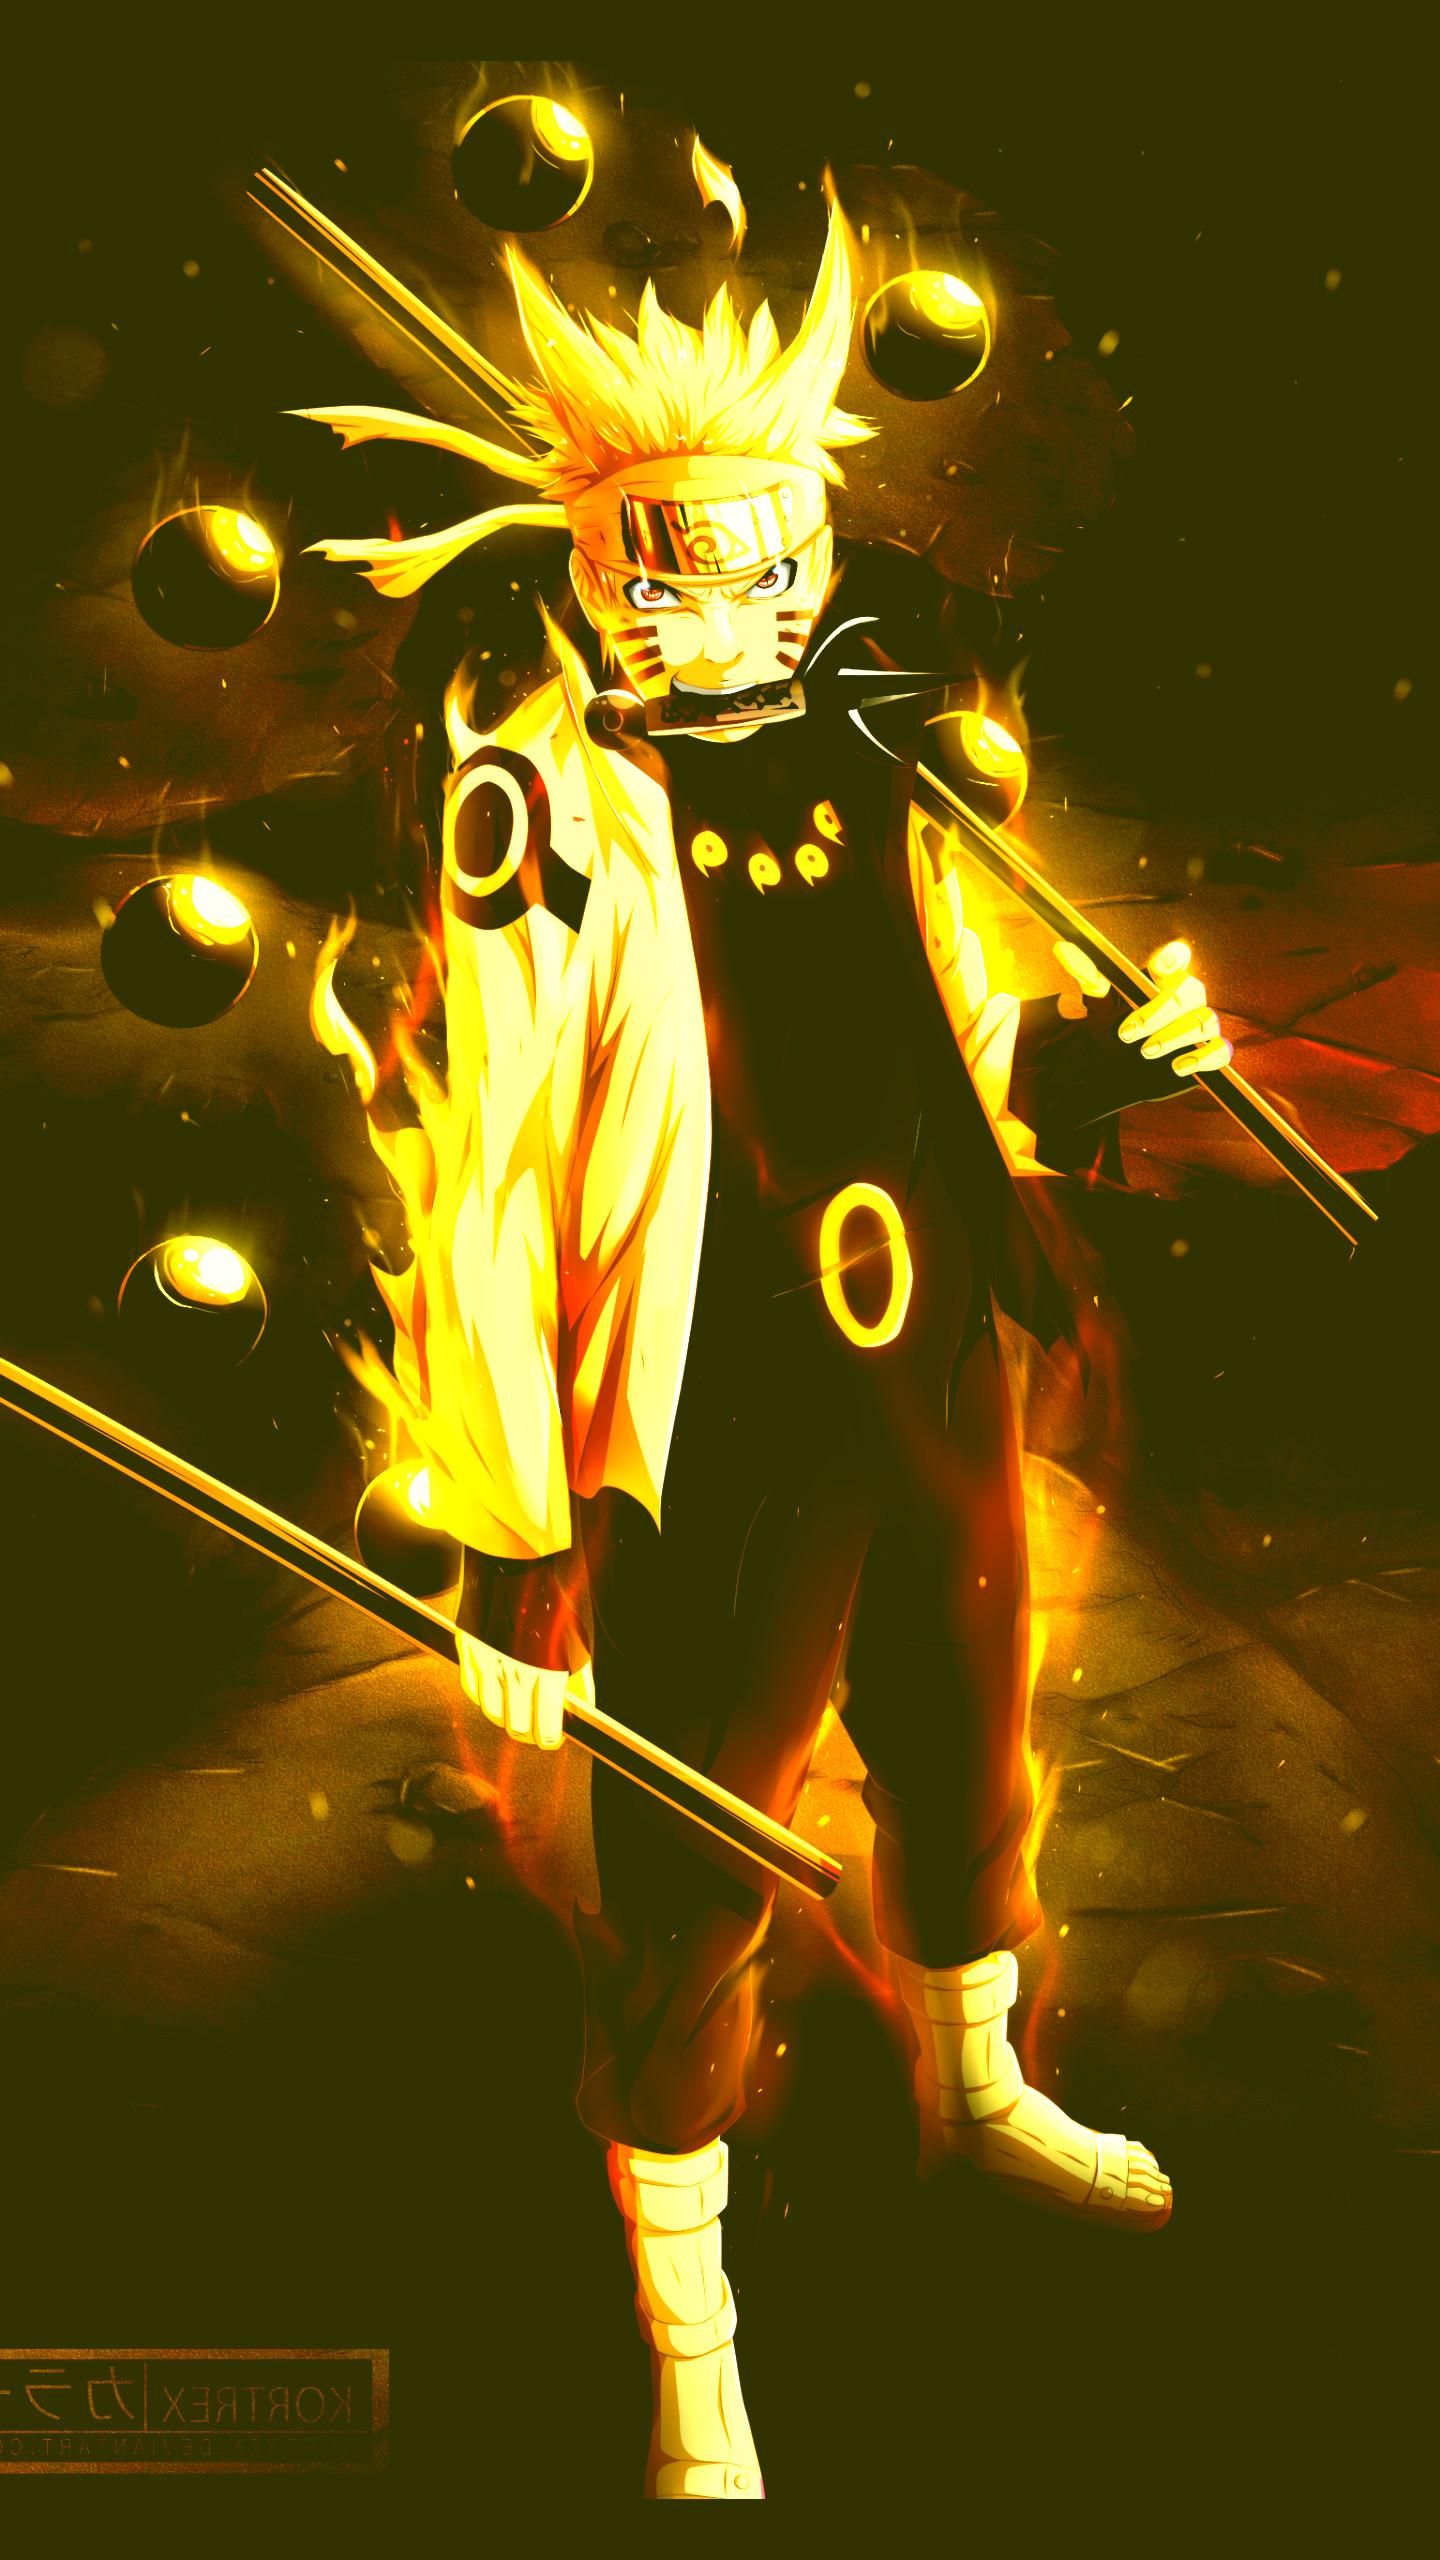 Supreme Naruto Iphone Wallpapers Wallpaper Cave